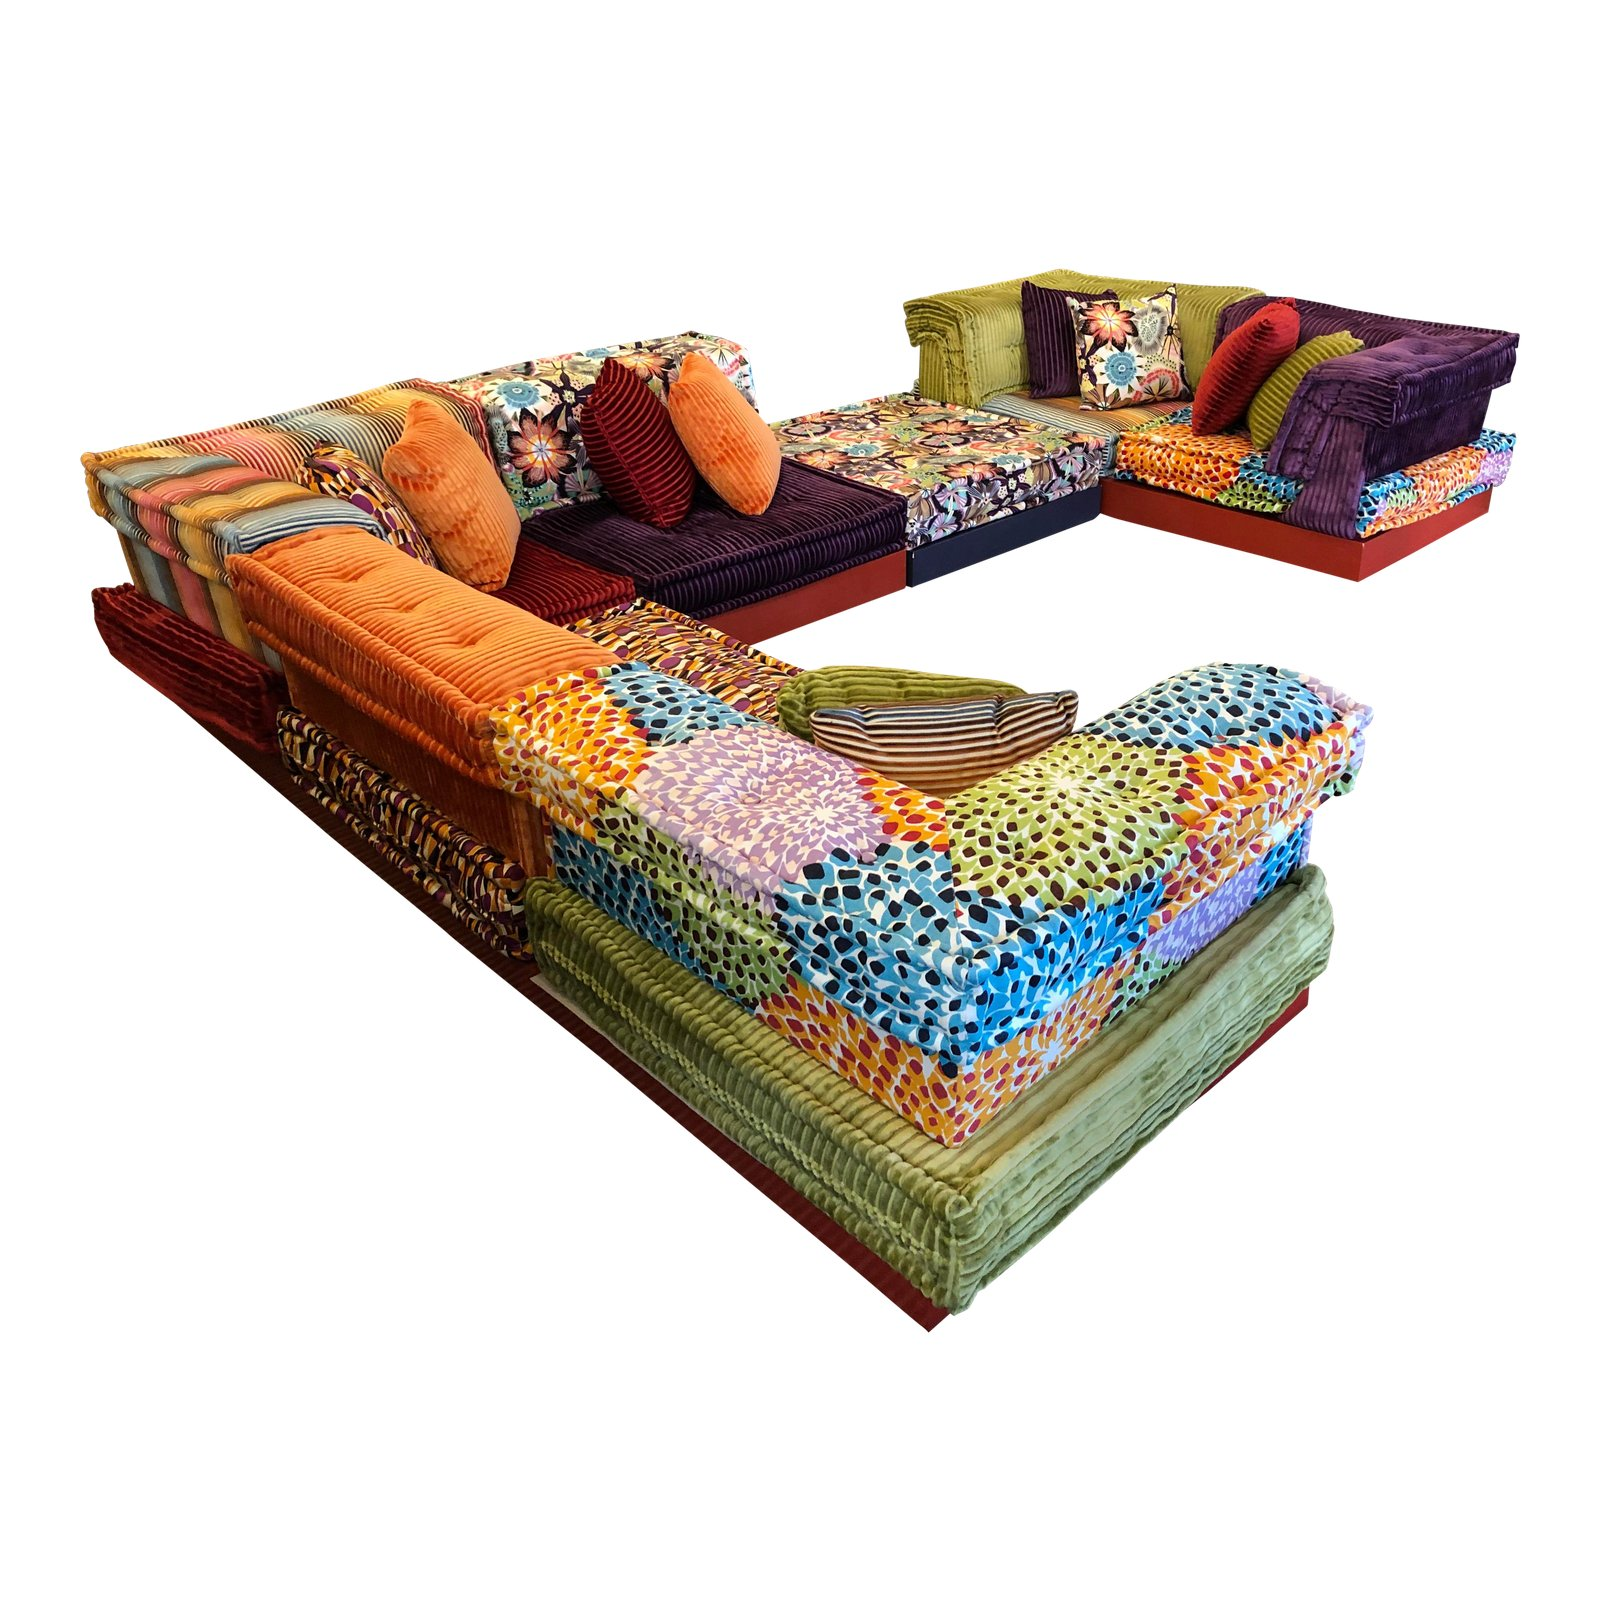 Terrific Missoni Mah Jong Sectional By Roche Bobois Original Price Ocoug Best Dining Table And Chair Ideas Images Ocougorg